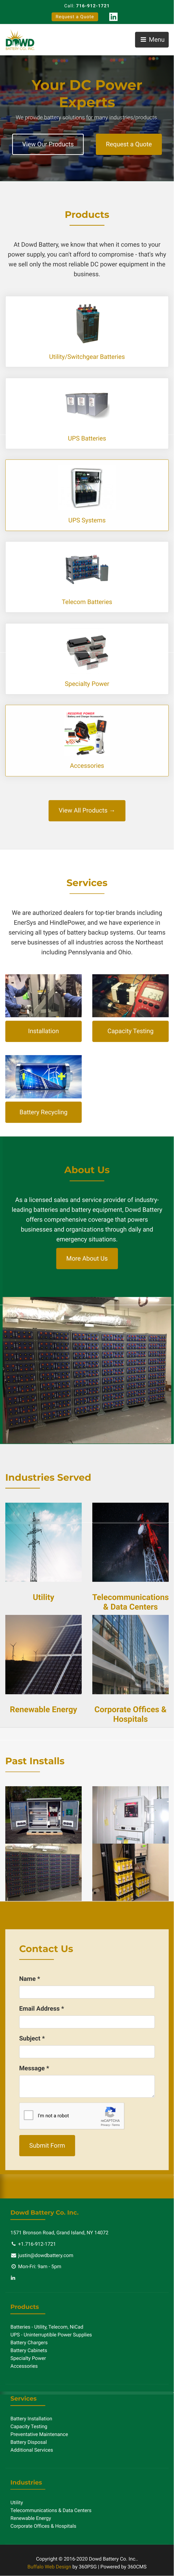 Dowd Battery Website - Mobile